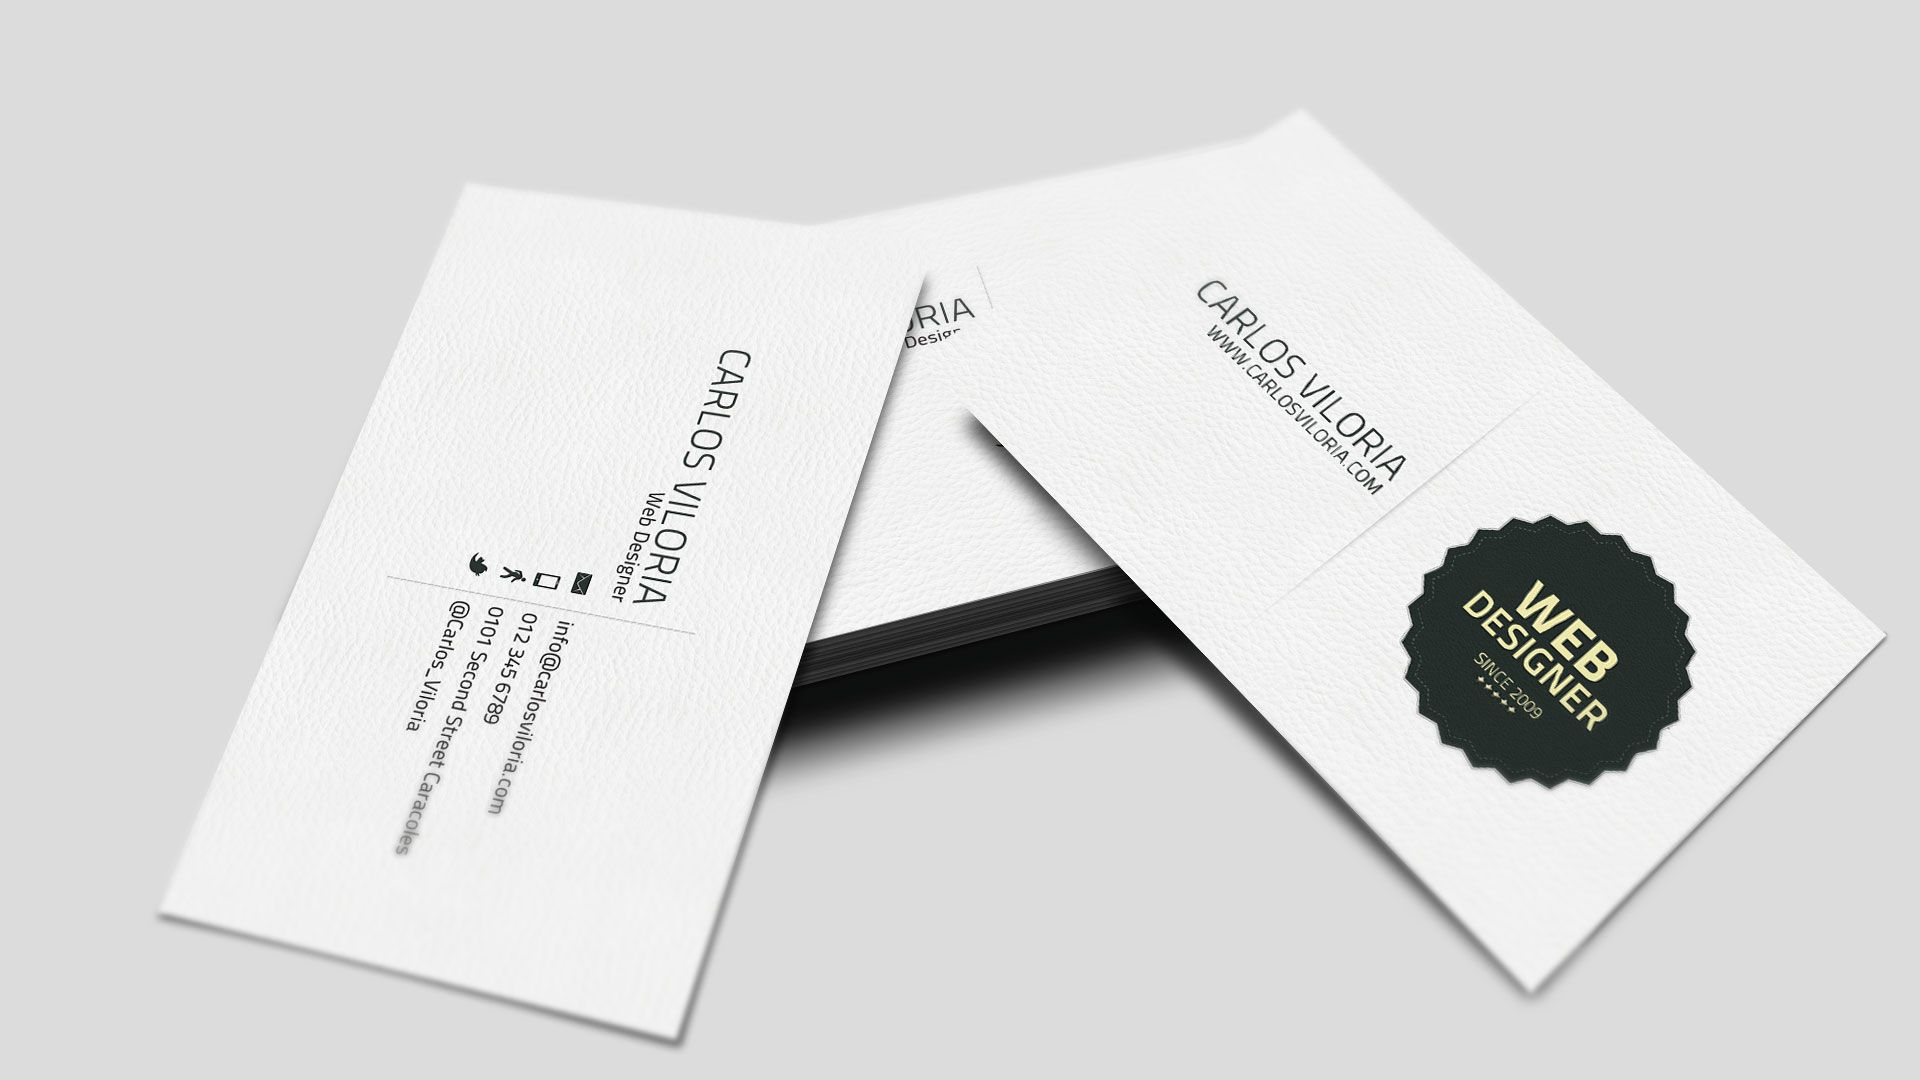 Free Retro Business Card Design and Mockup Mockup and Business cards